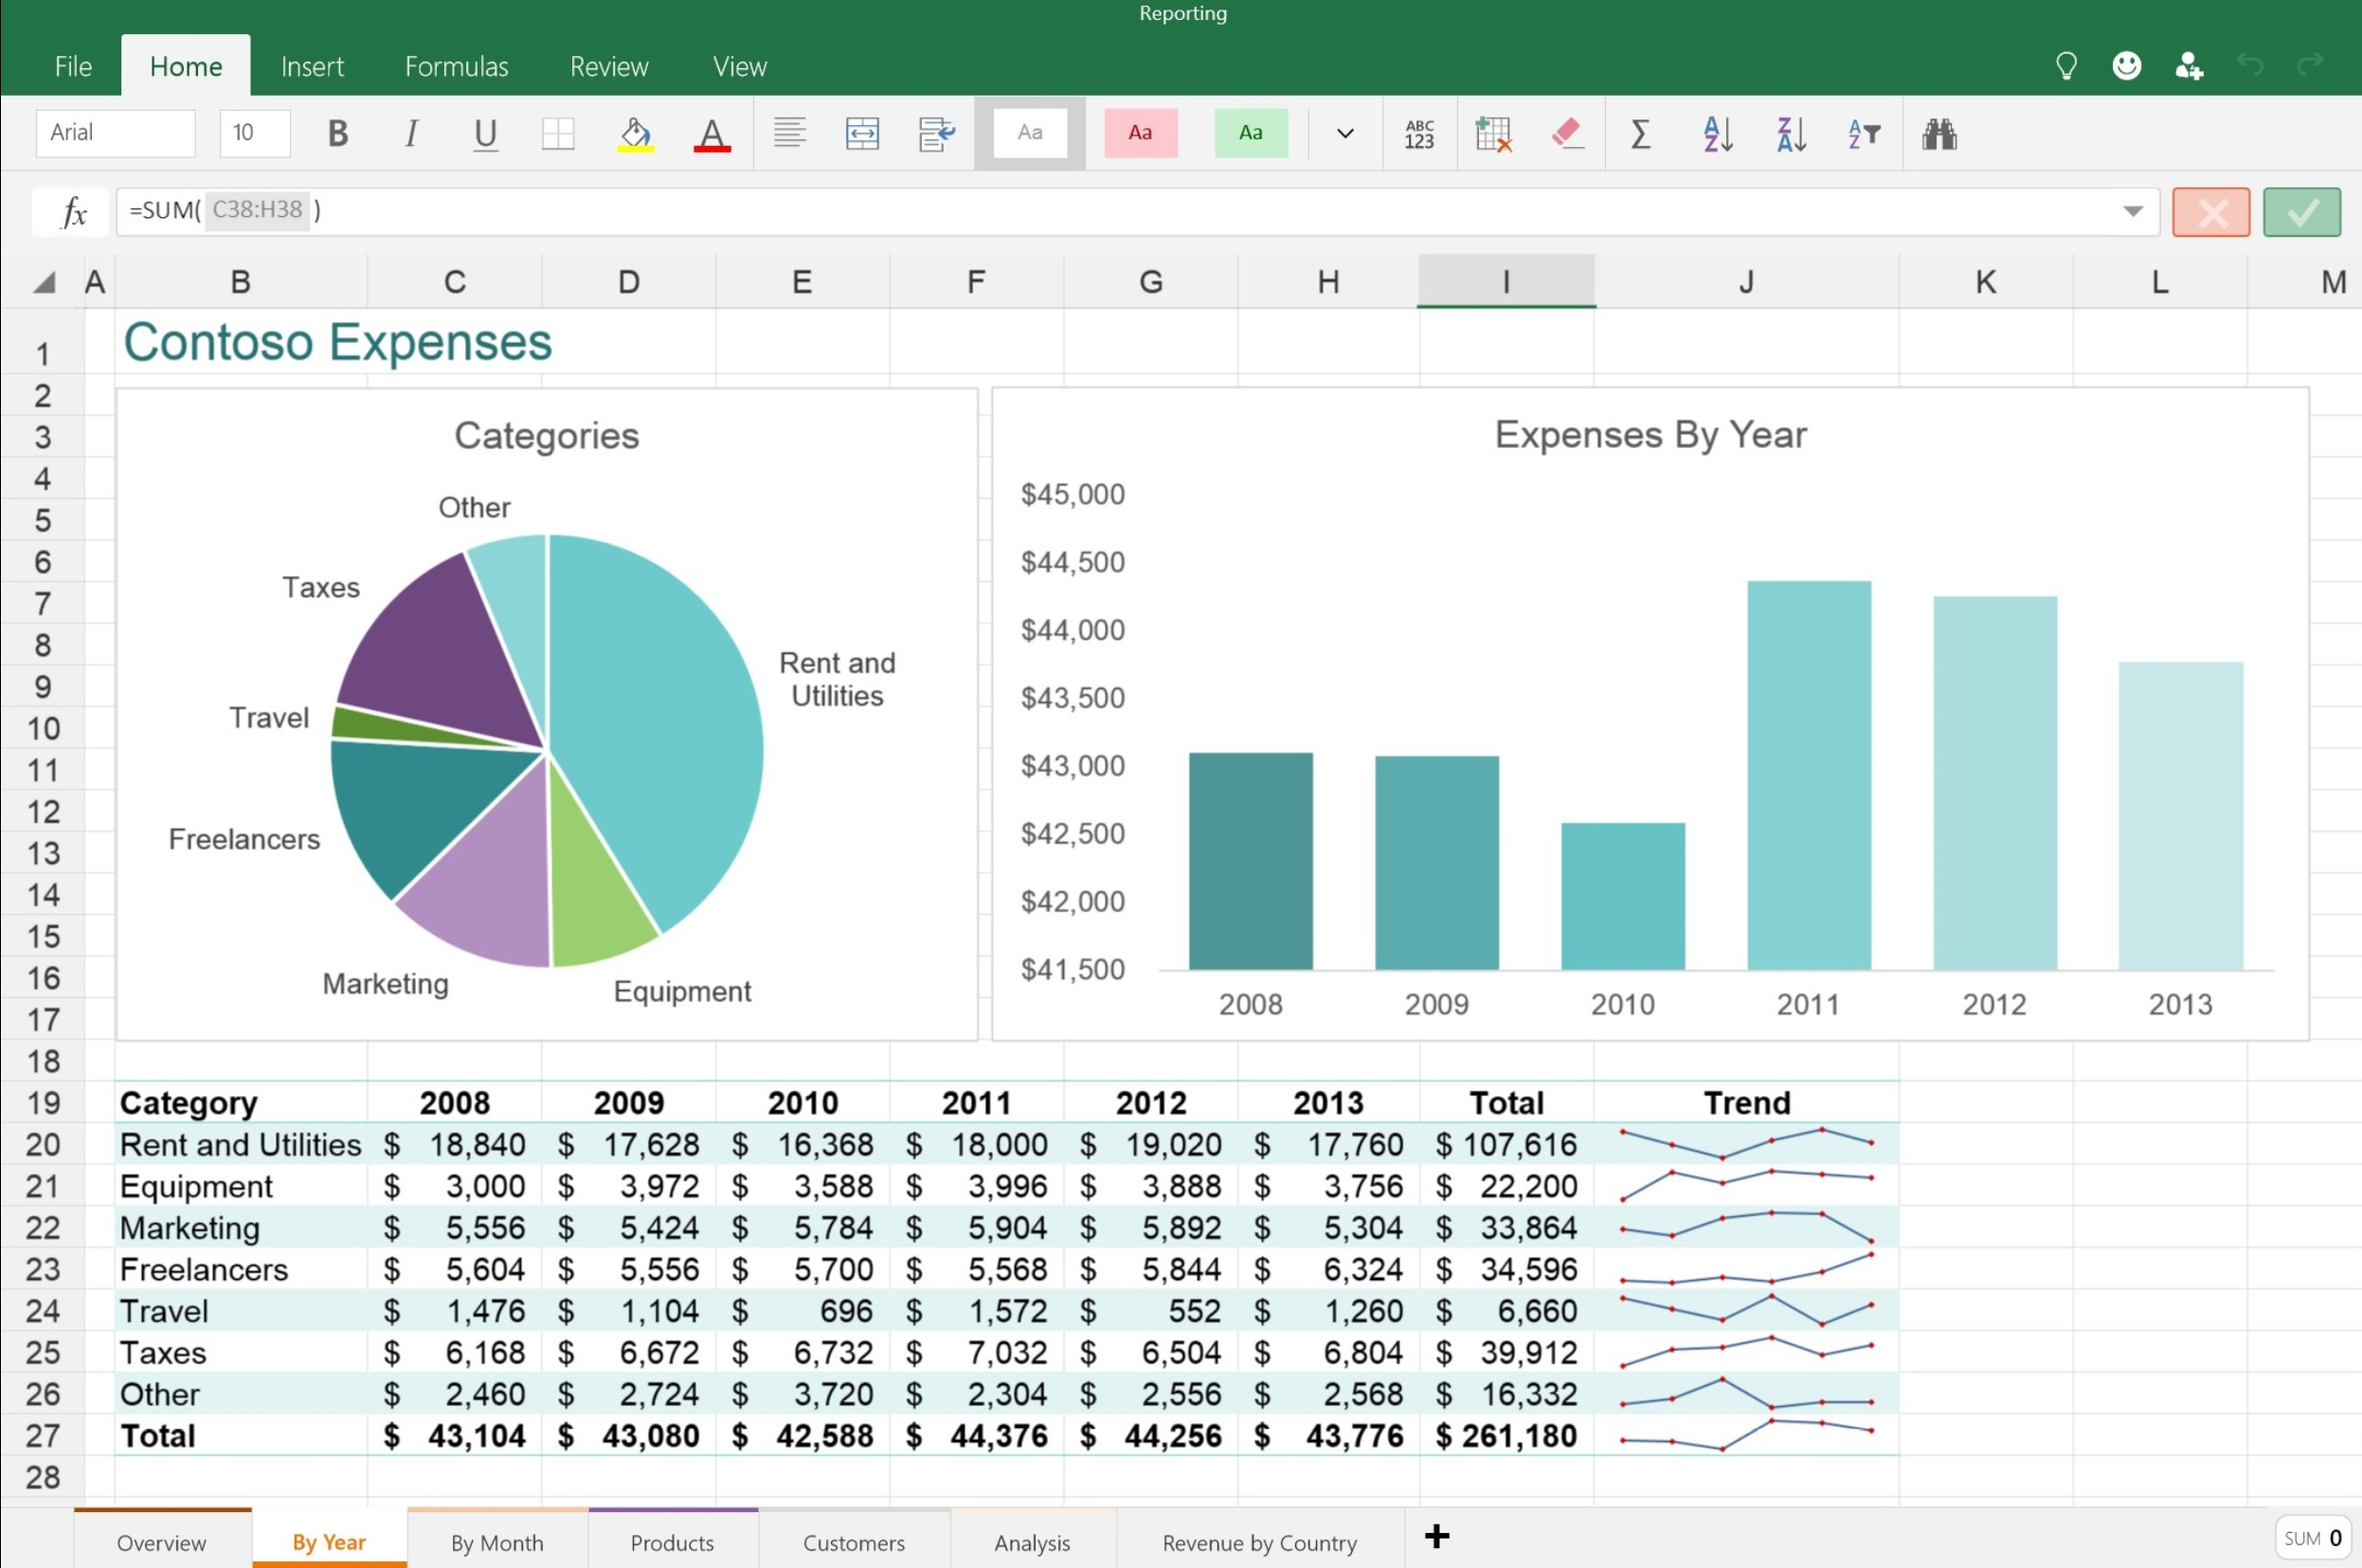 Ediblewildsus  Inspiring Features Available In The New Word Excel And Powerpoint Apps For  With Fetching Excel Touch App  With Nice How To Make A Balance Sheet In Excel Also Remove Trailing Spaces Excel In Addition How To Insert Symbols In Excel And Excel Vba Row Height As Well As Min Function In Excel Additionally Skillpath Excel From Mspowerusercom With Ediblewildsus  Fetching Features Available In The New Word Excel And Powerpoint Apps For  With Nice Excel Touch App  And Inspiring How To Make A Balance Sheet In Excel Also Remove Trailing Spaces Excel In Addition How To Insert Symbols In Excel From Mspowerusercom